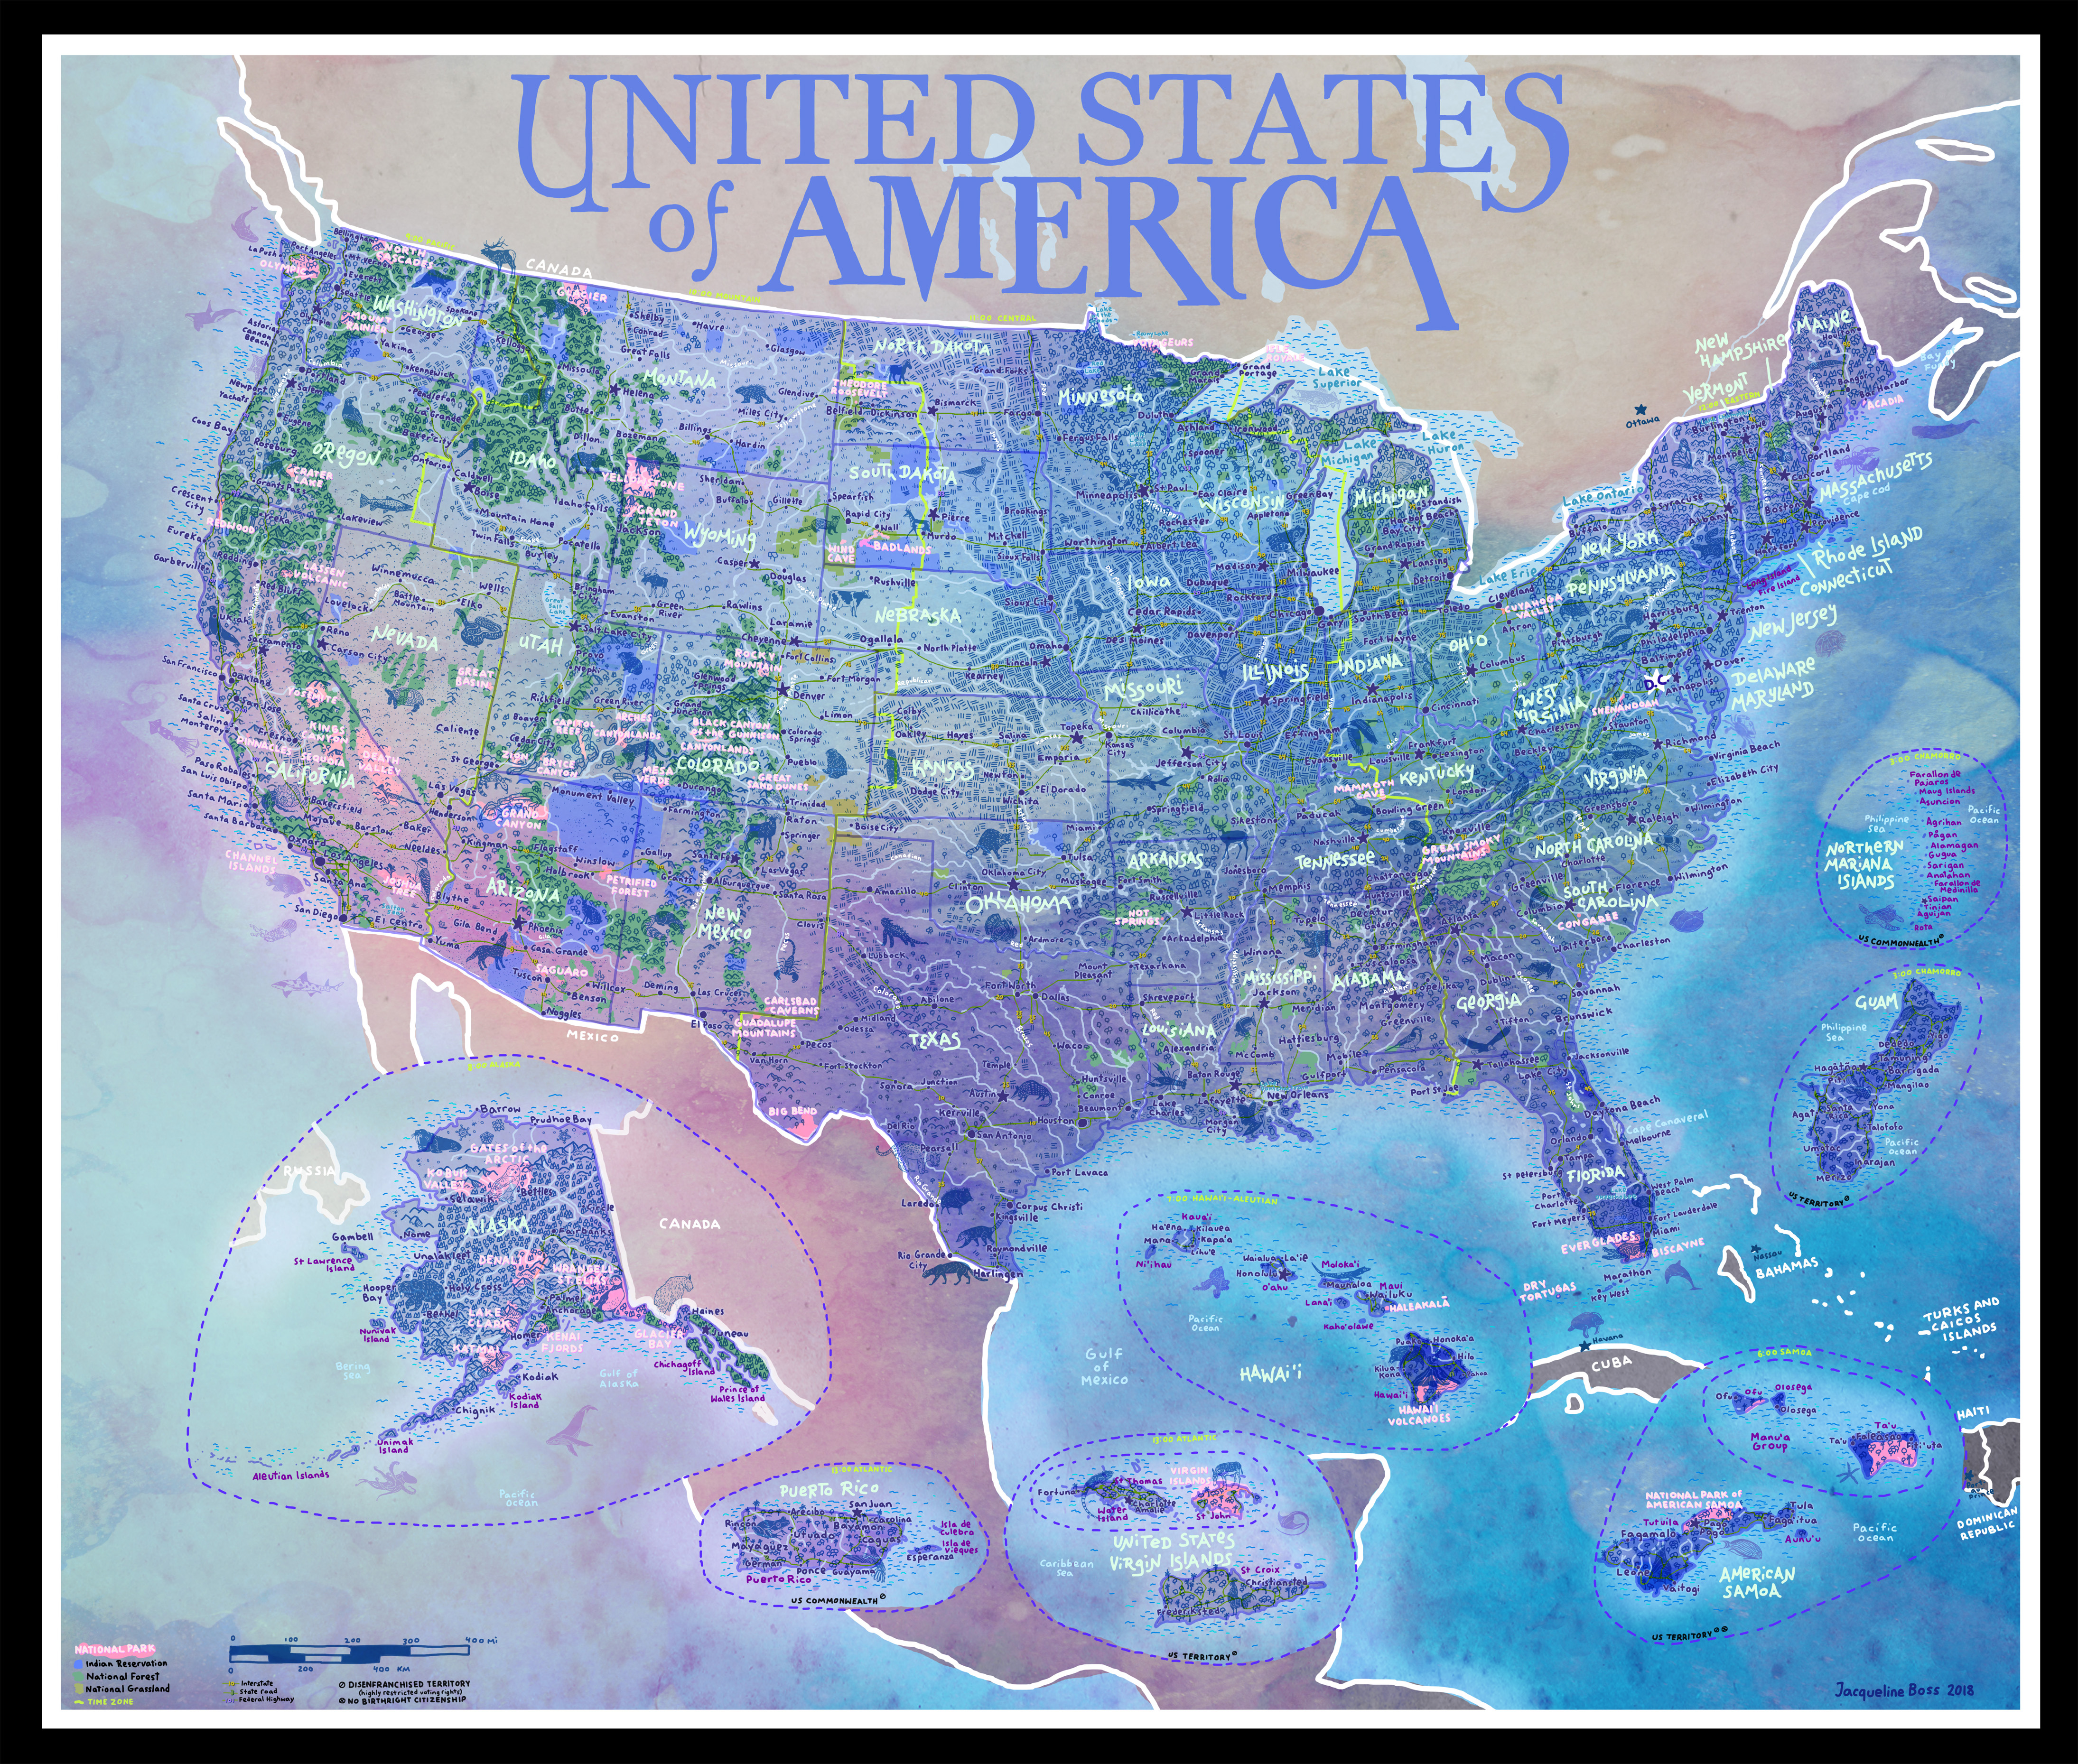 Map Of America National Parks.Us National Parks Adventure Map Highlights America S Wildernesses